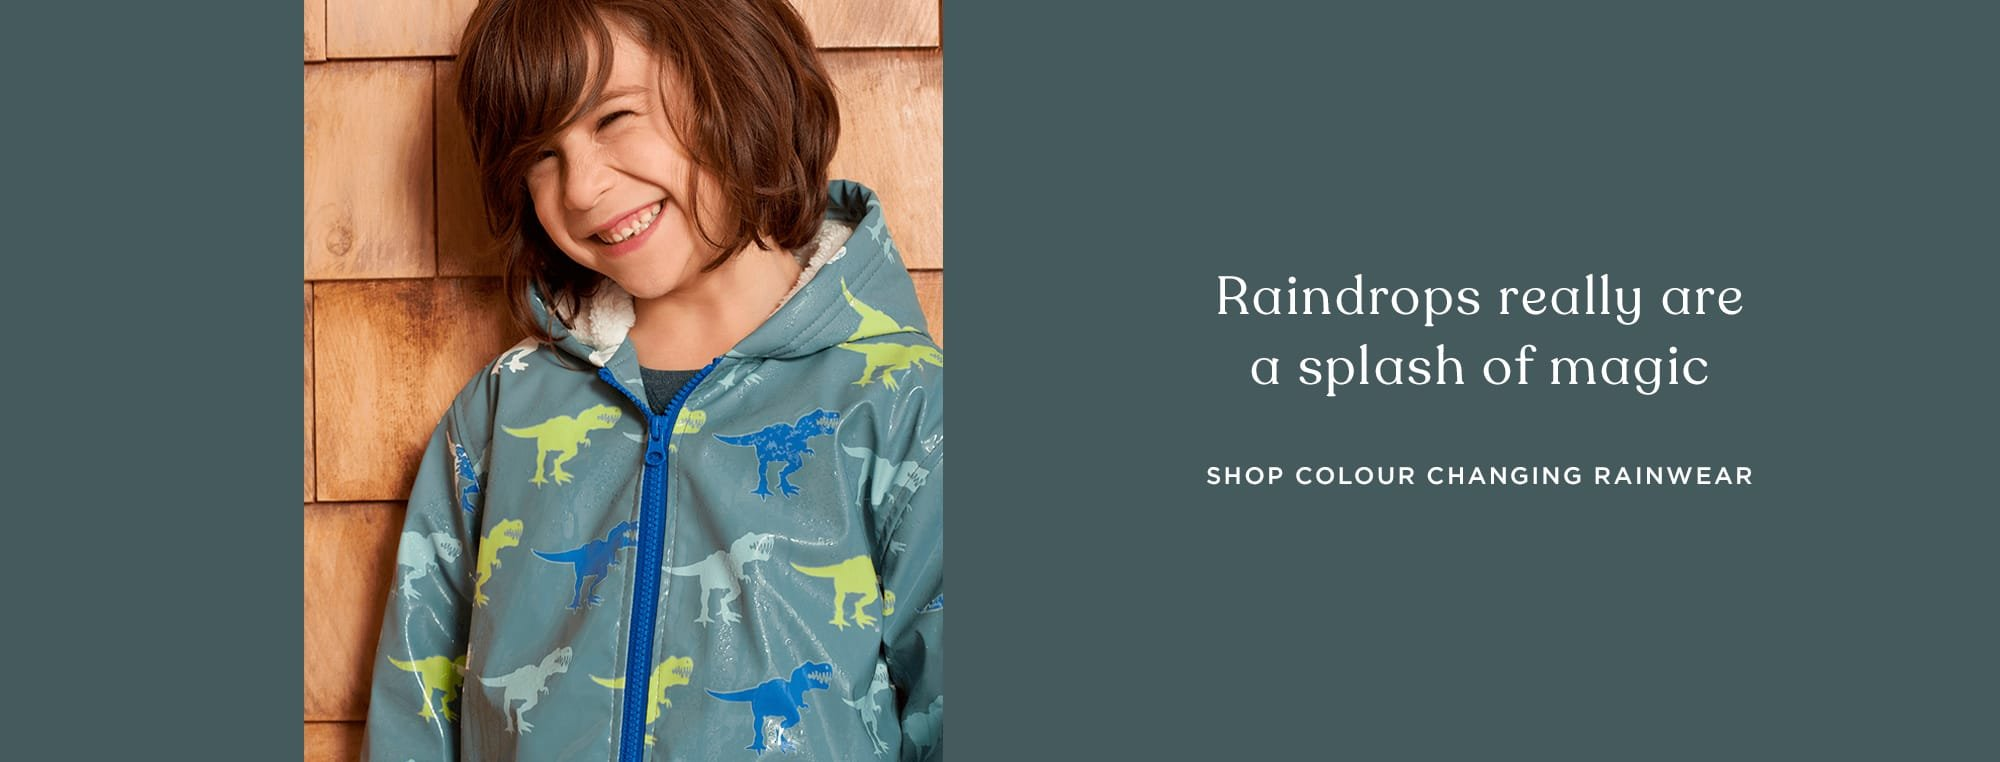 Colour changing rainwear